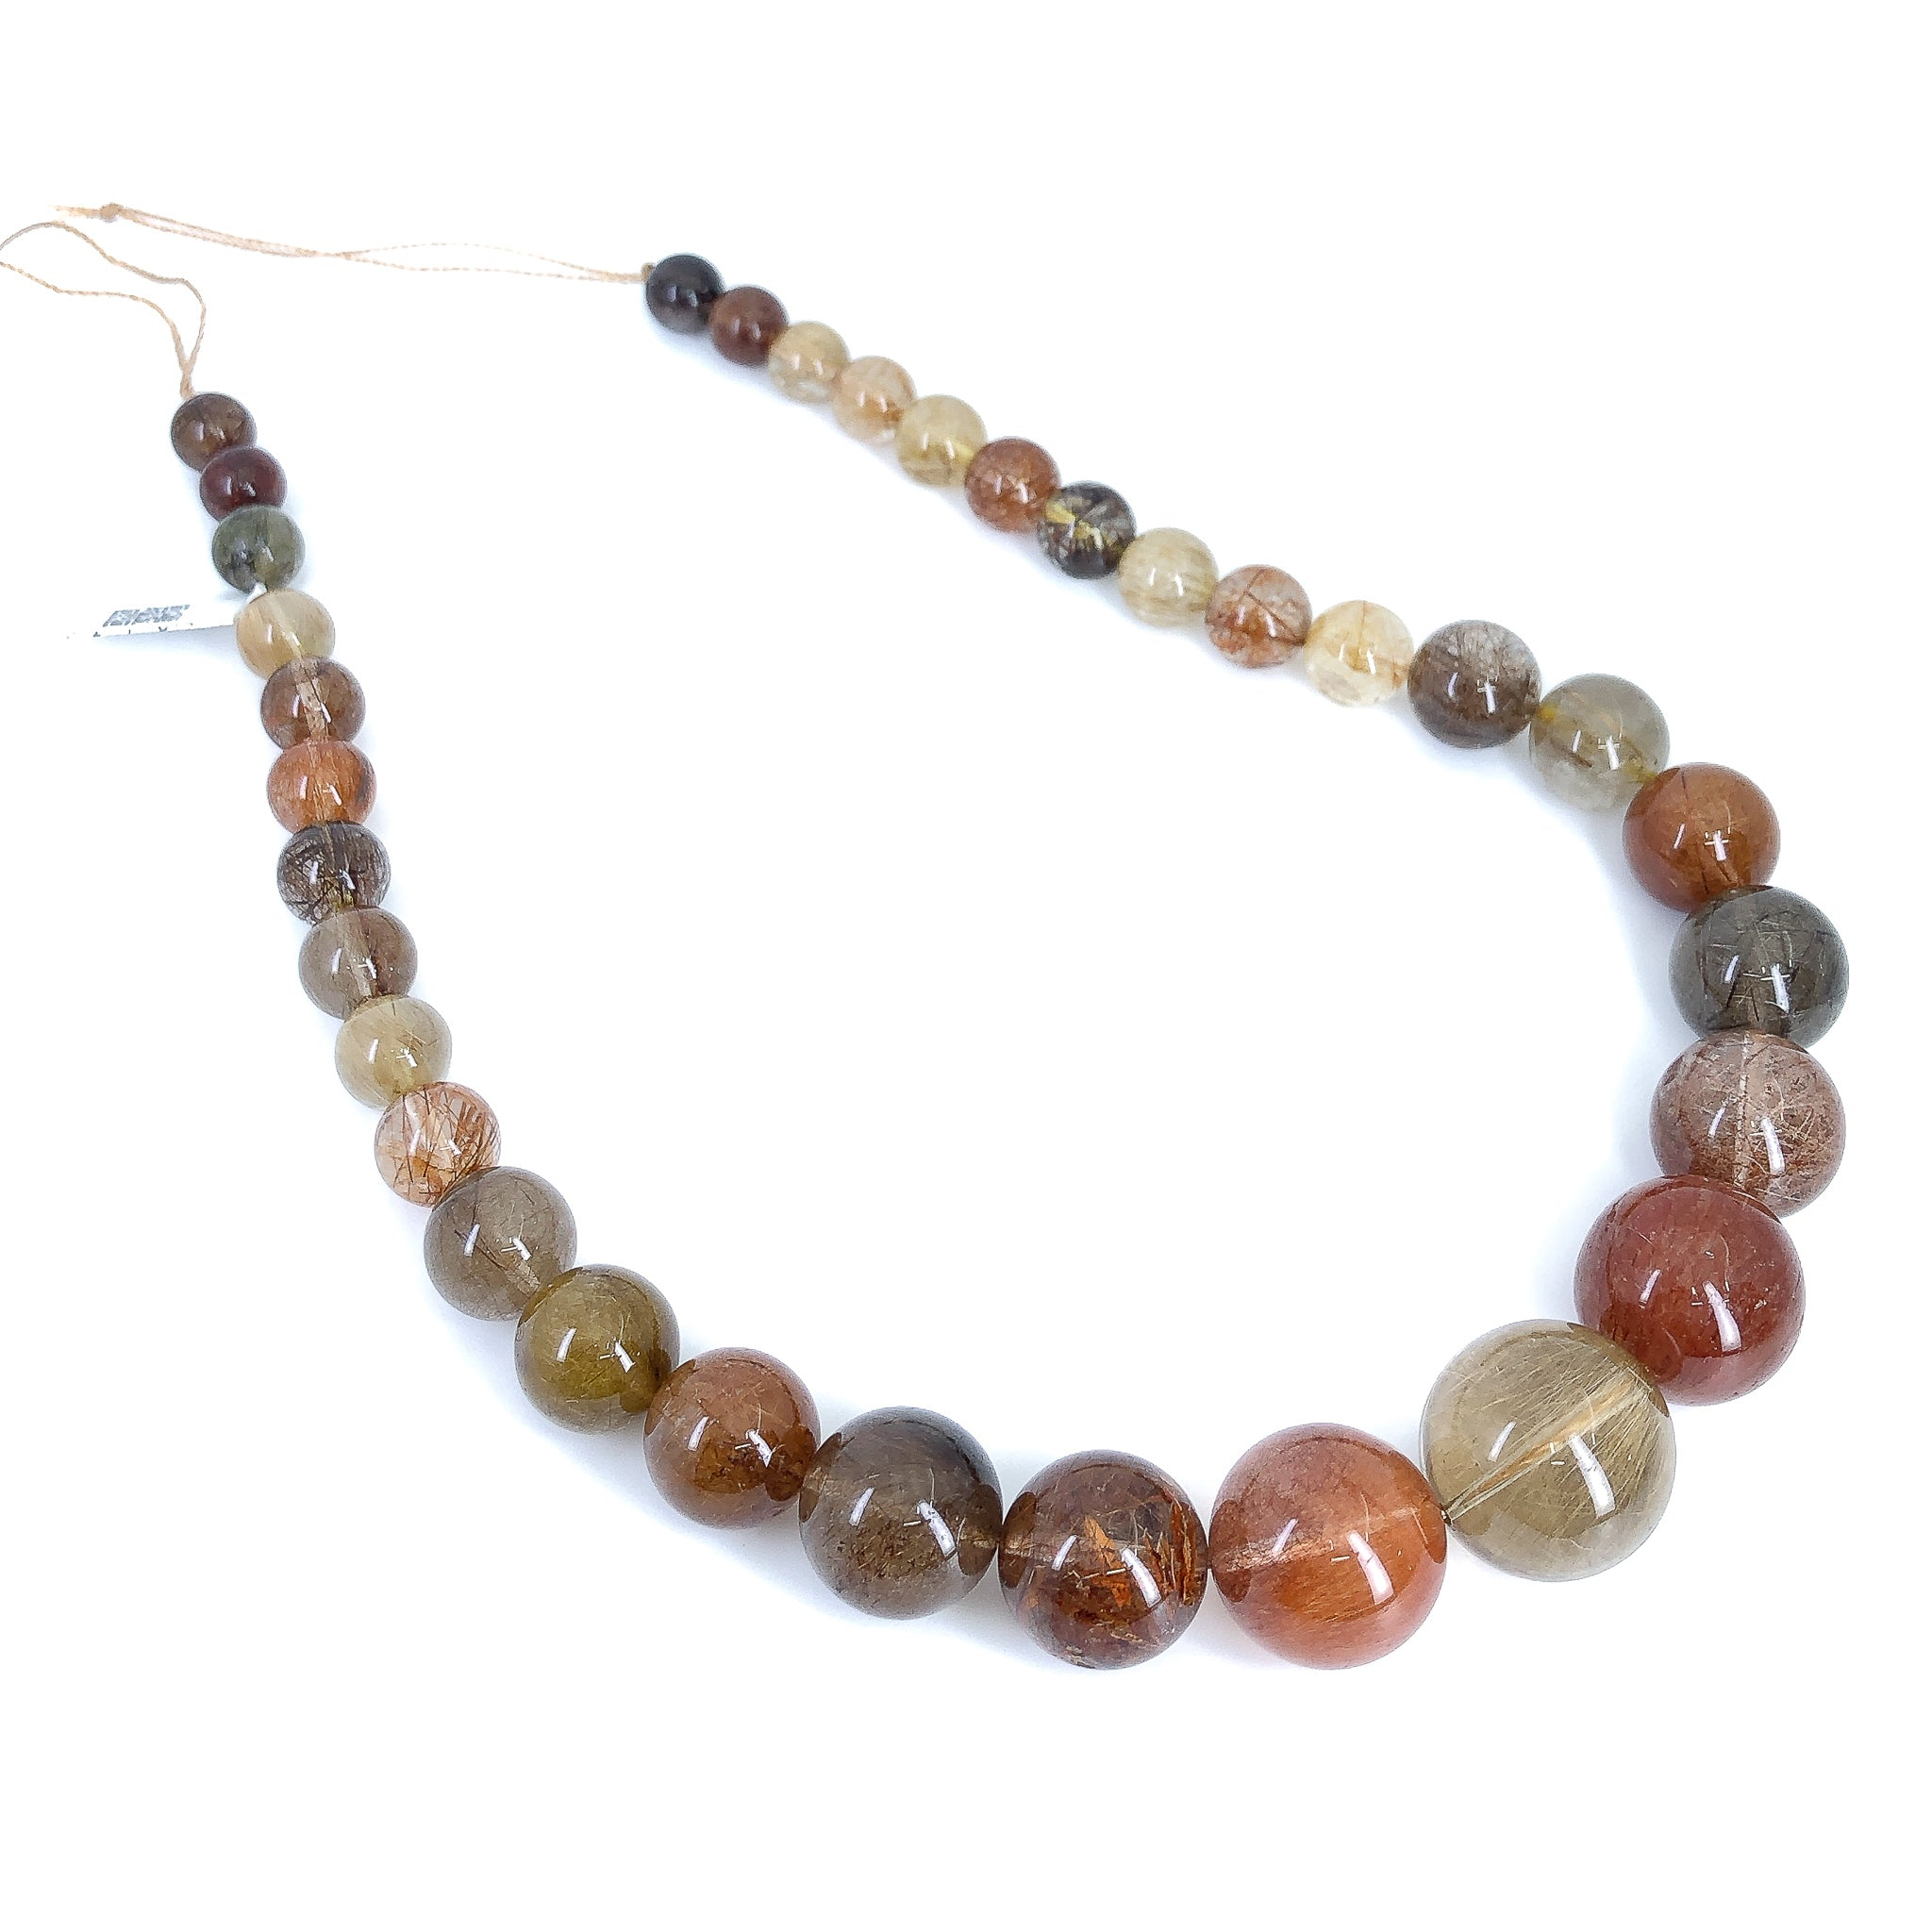 Multicolor Rutilated Quartz Full Strand - 8-20mm Graduated Smooth Round